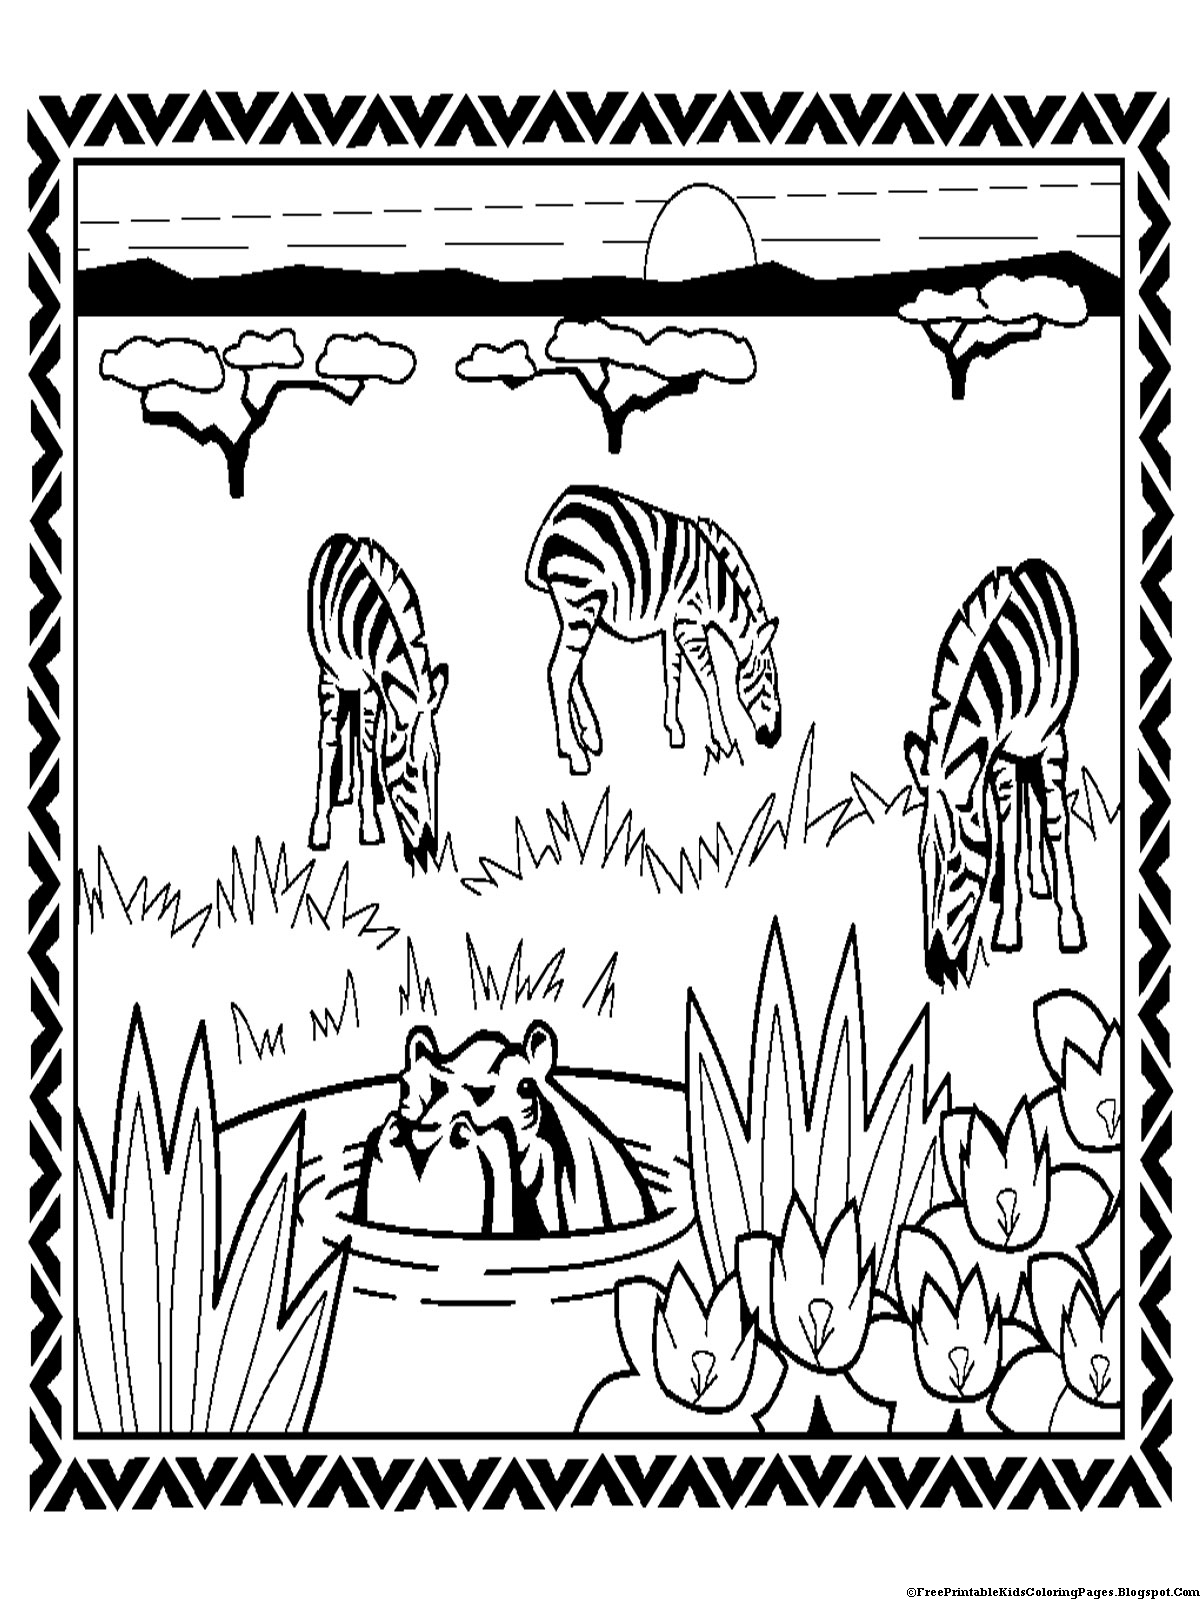 zebra print coloring pages zebra coloring pages free printable kids coloring pages zebra print coloring pages